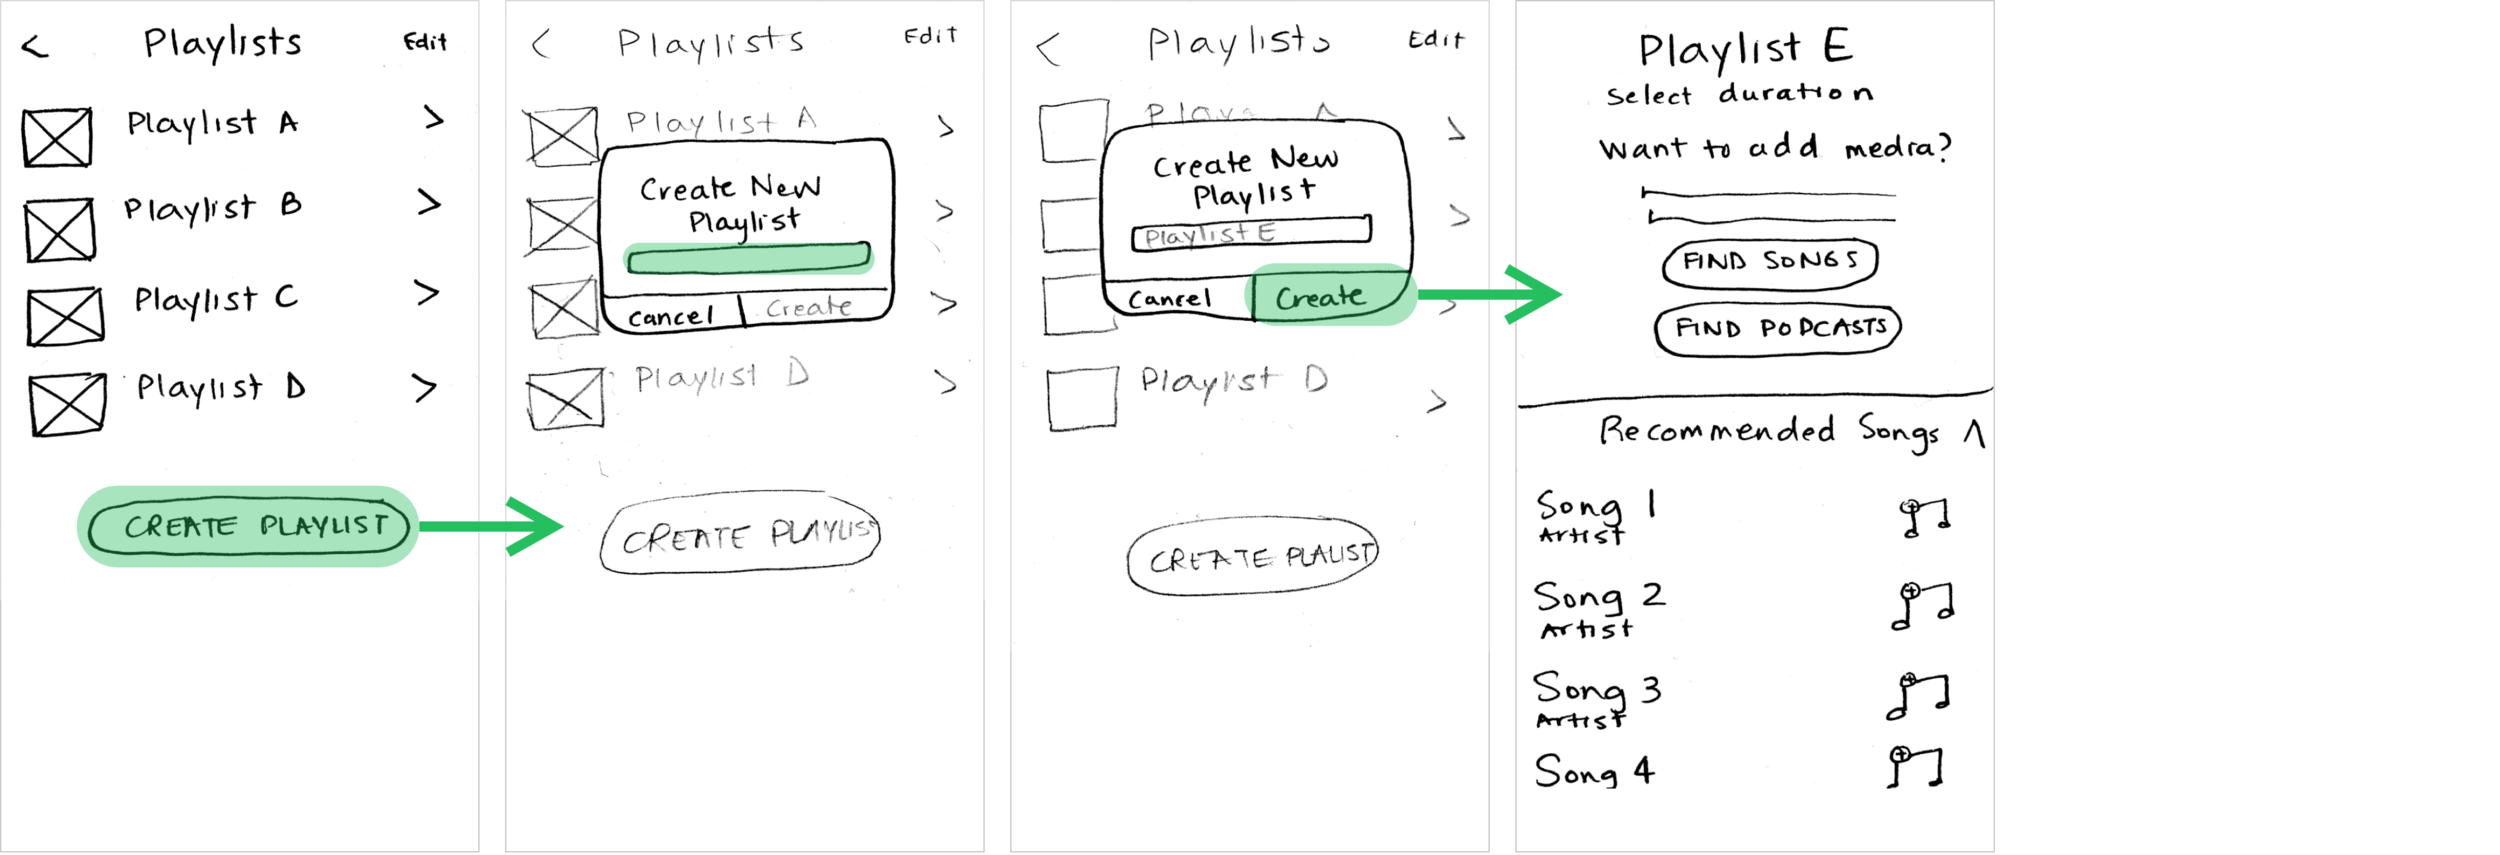 spotify_paper_new.png